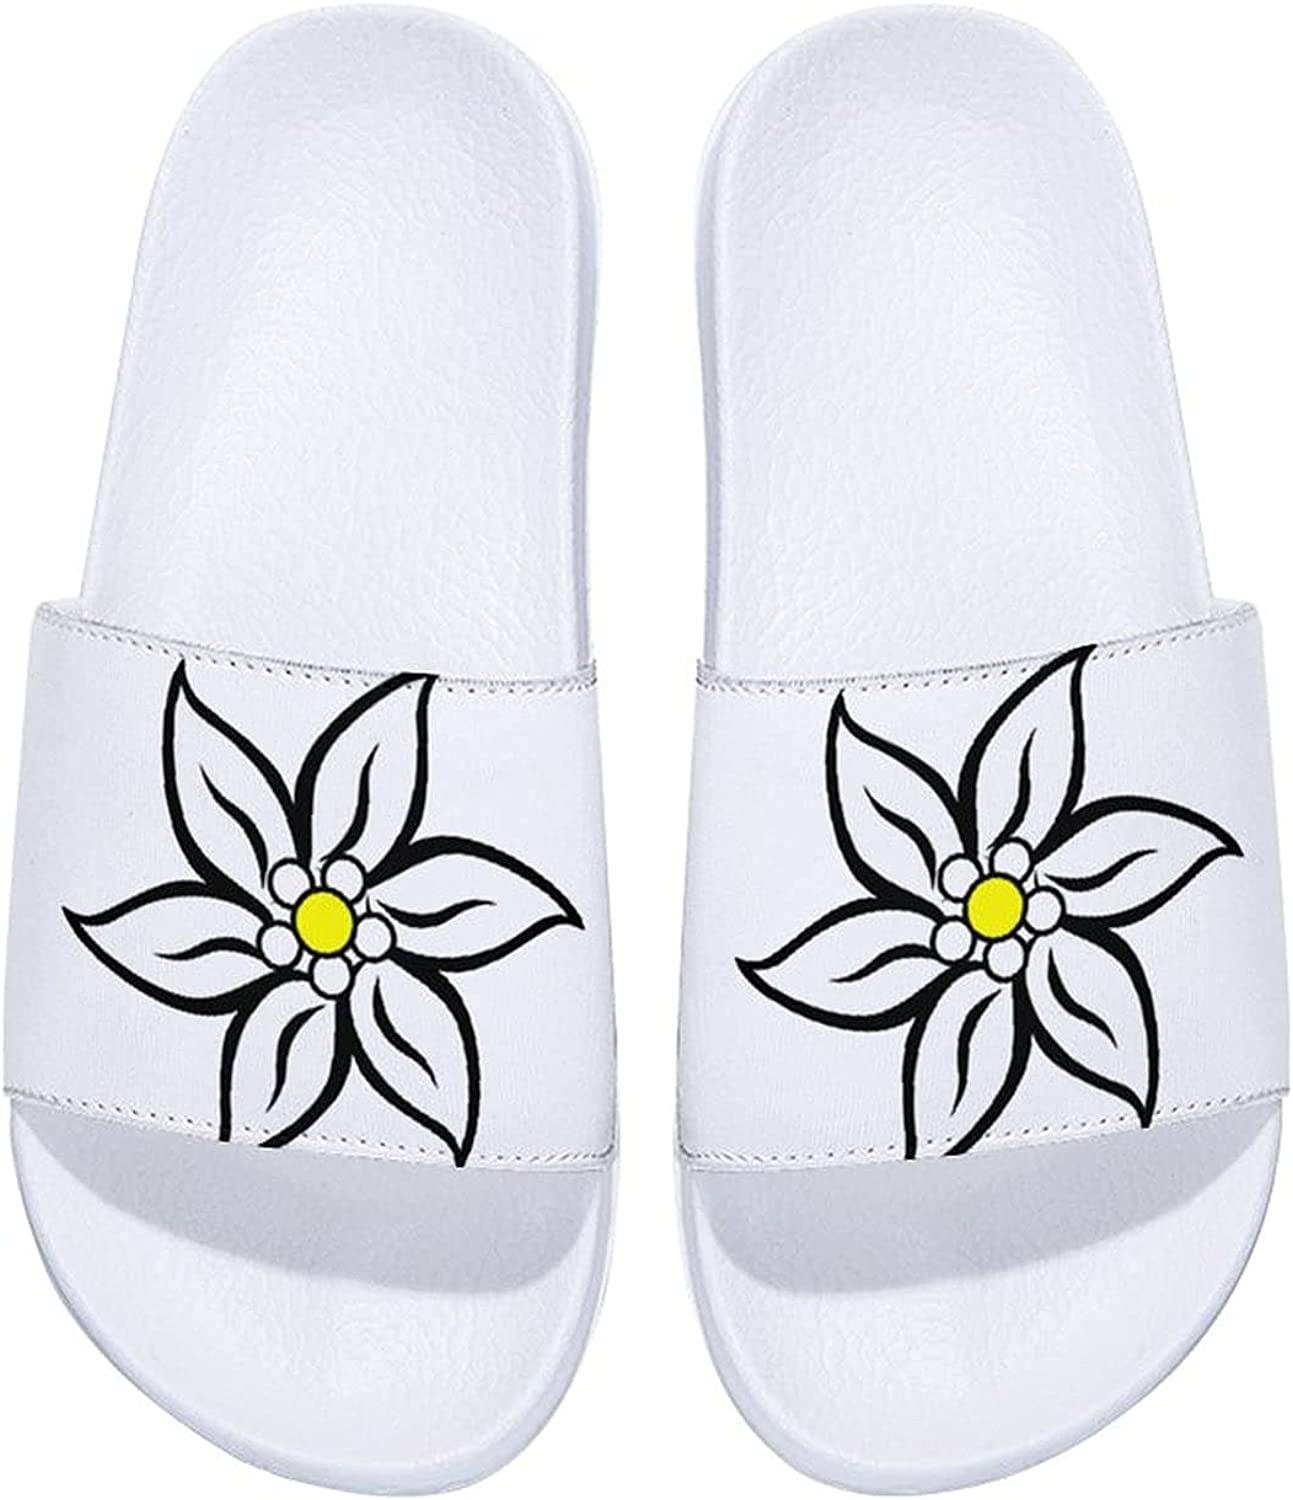 Inventory cleanup selling sale Edelweiss Men's and Women's Jacksonville Mall Comfort Indoor Slide Outdoor Sandals